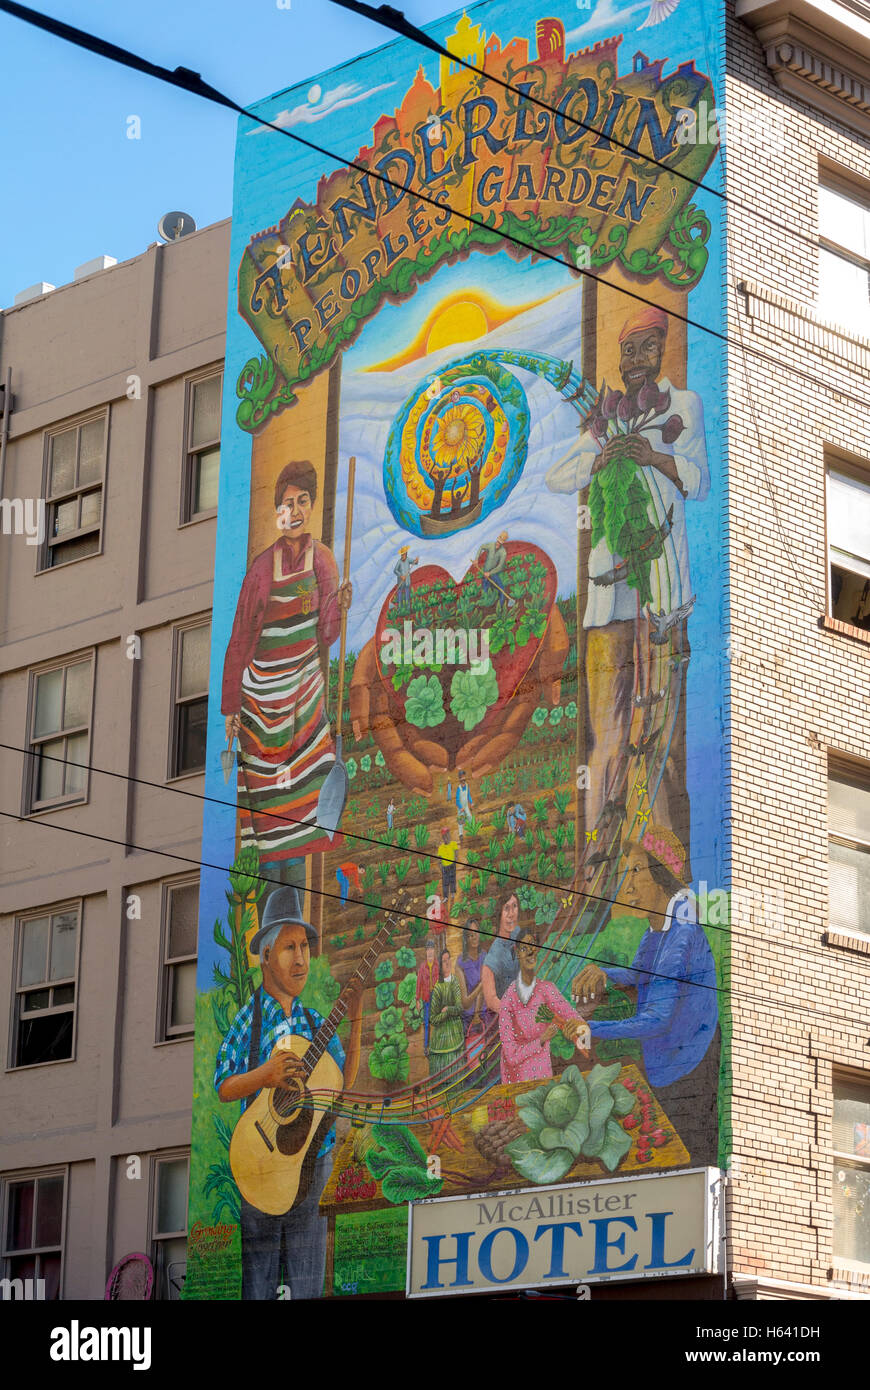 San Francisco Ca Usa Street Art Public Wall Mural Painting Stock Photo Alamy